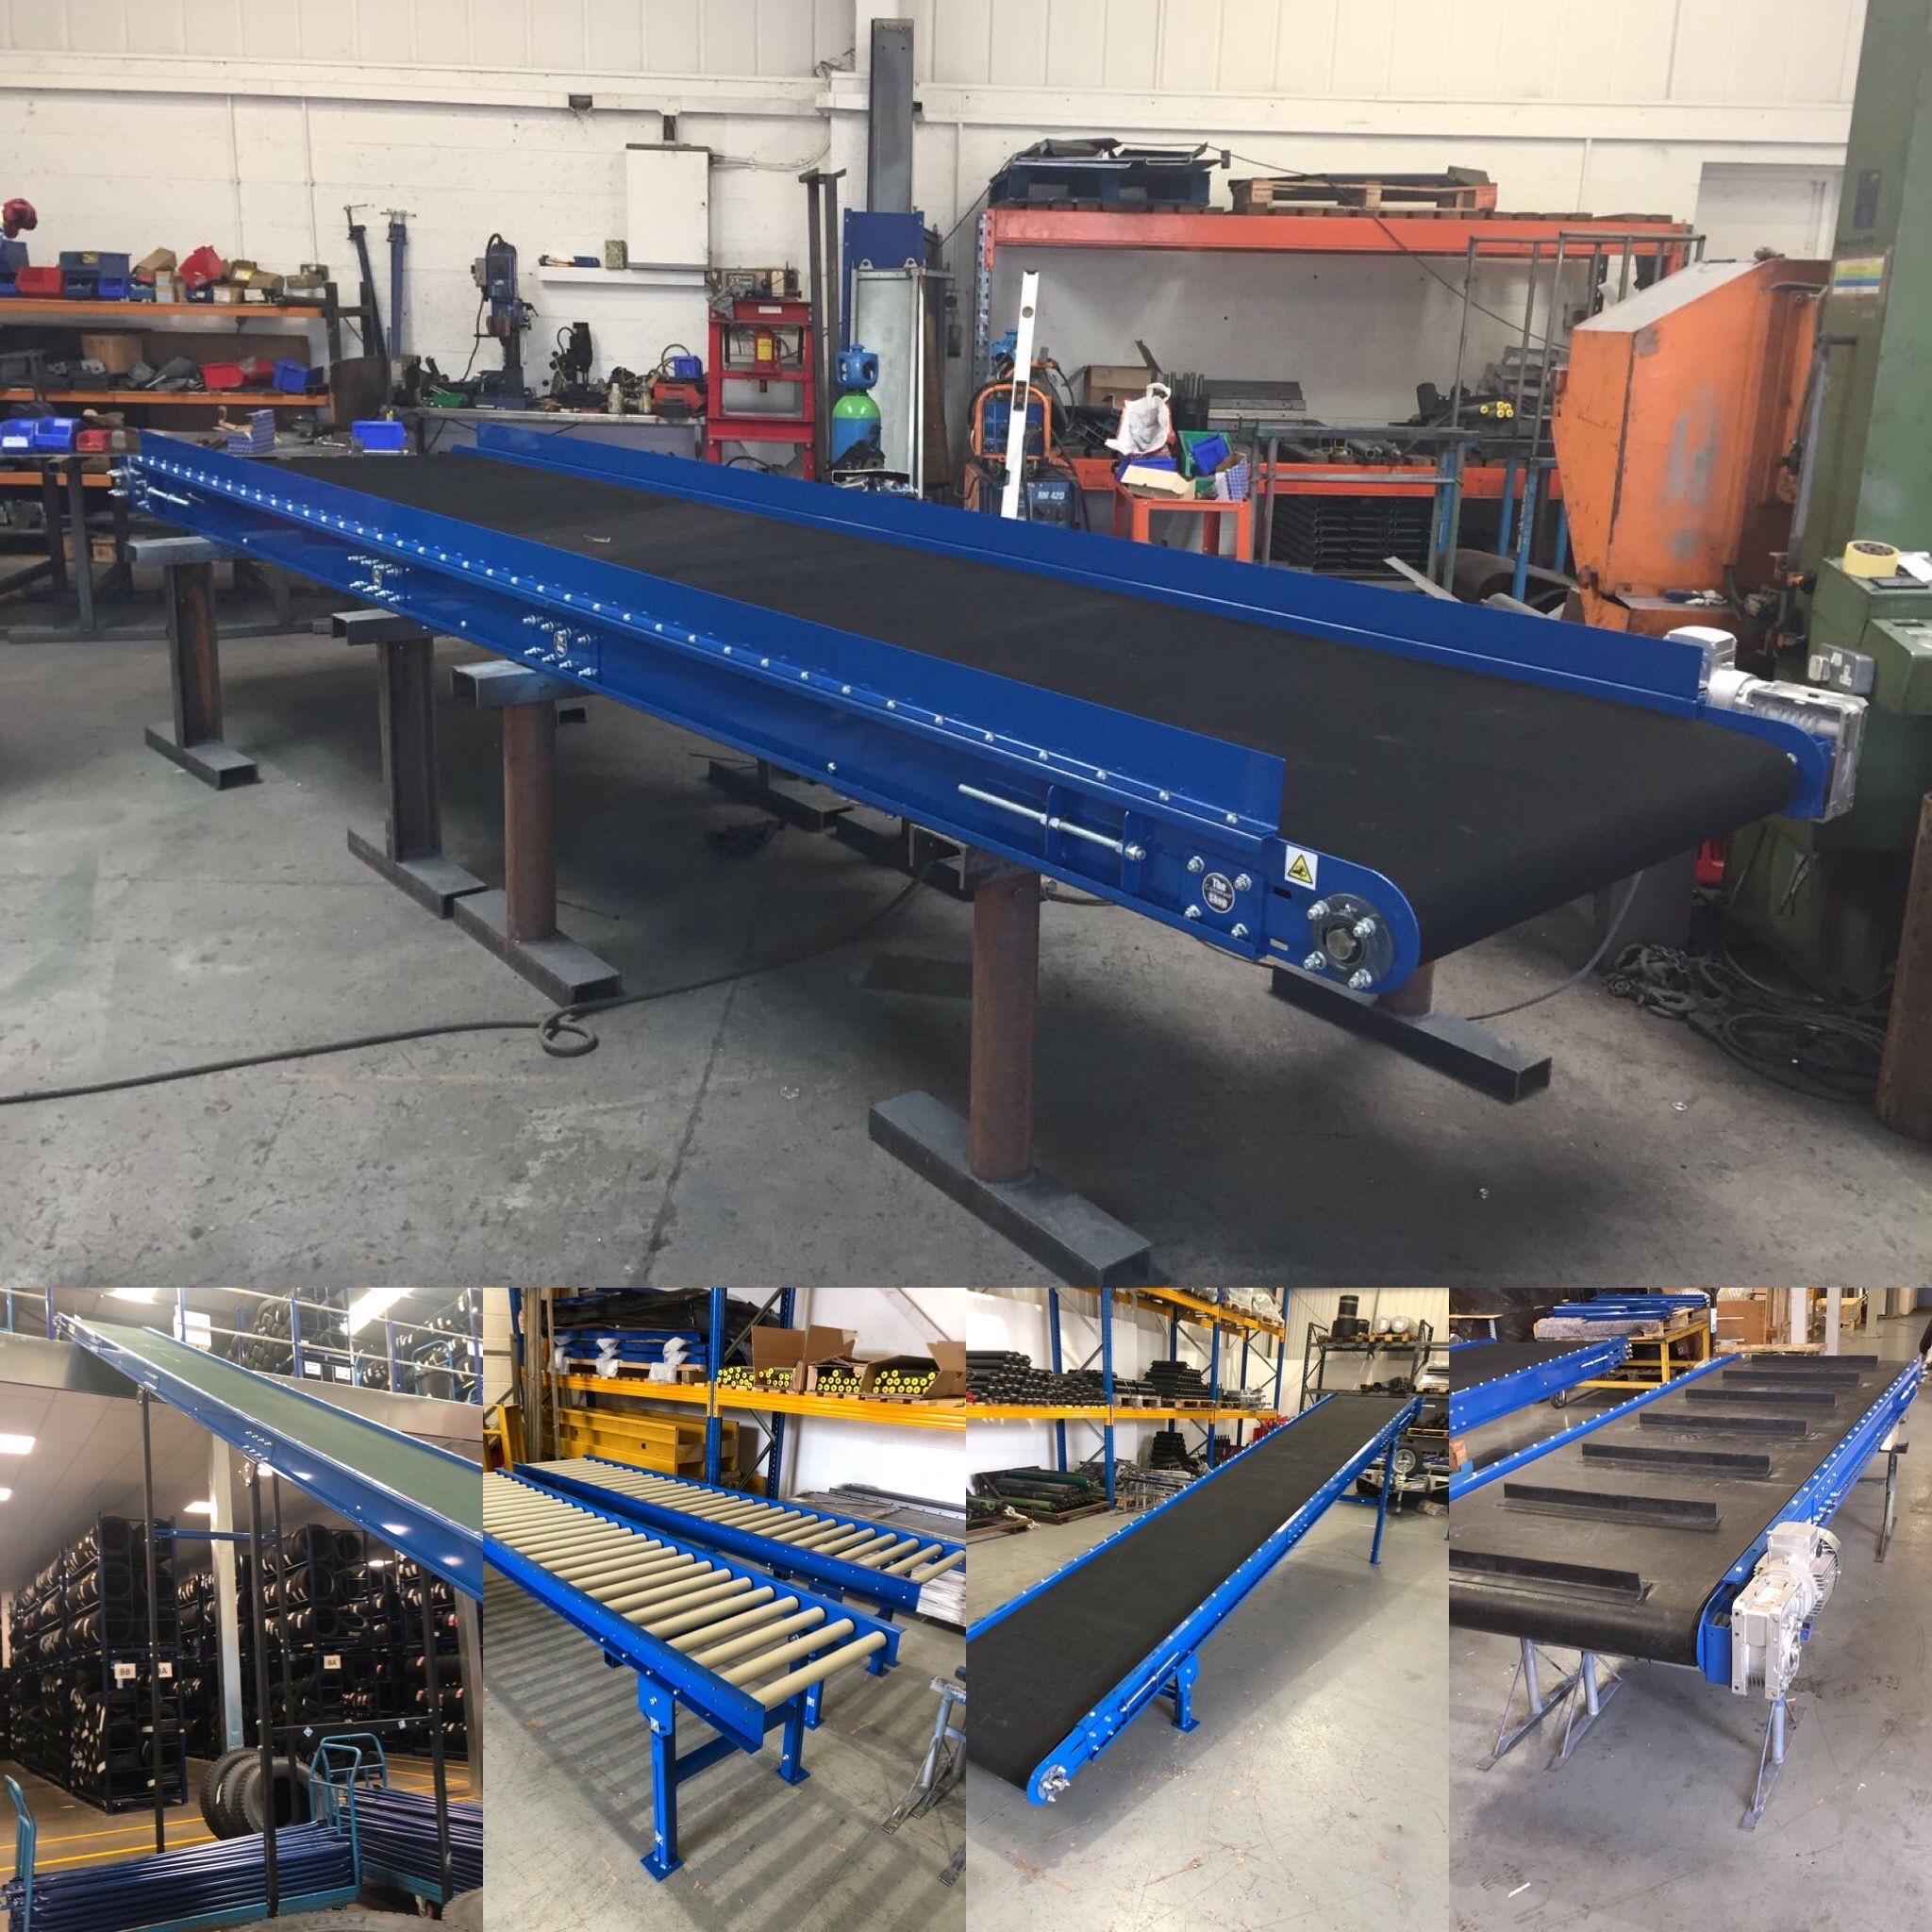 The_Conveyor_Shop_LDC_Range_